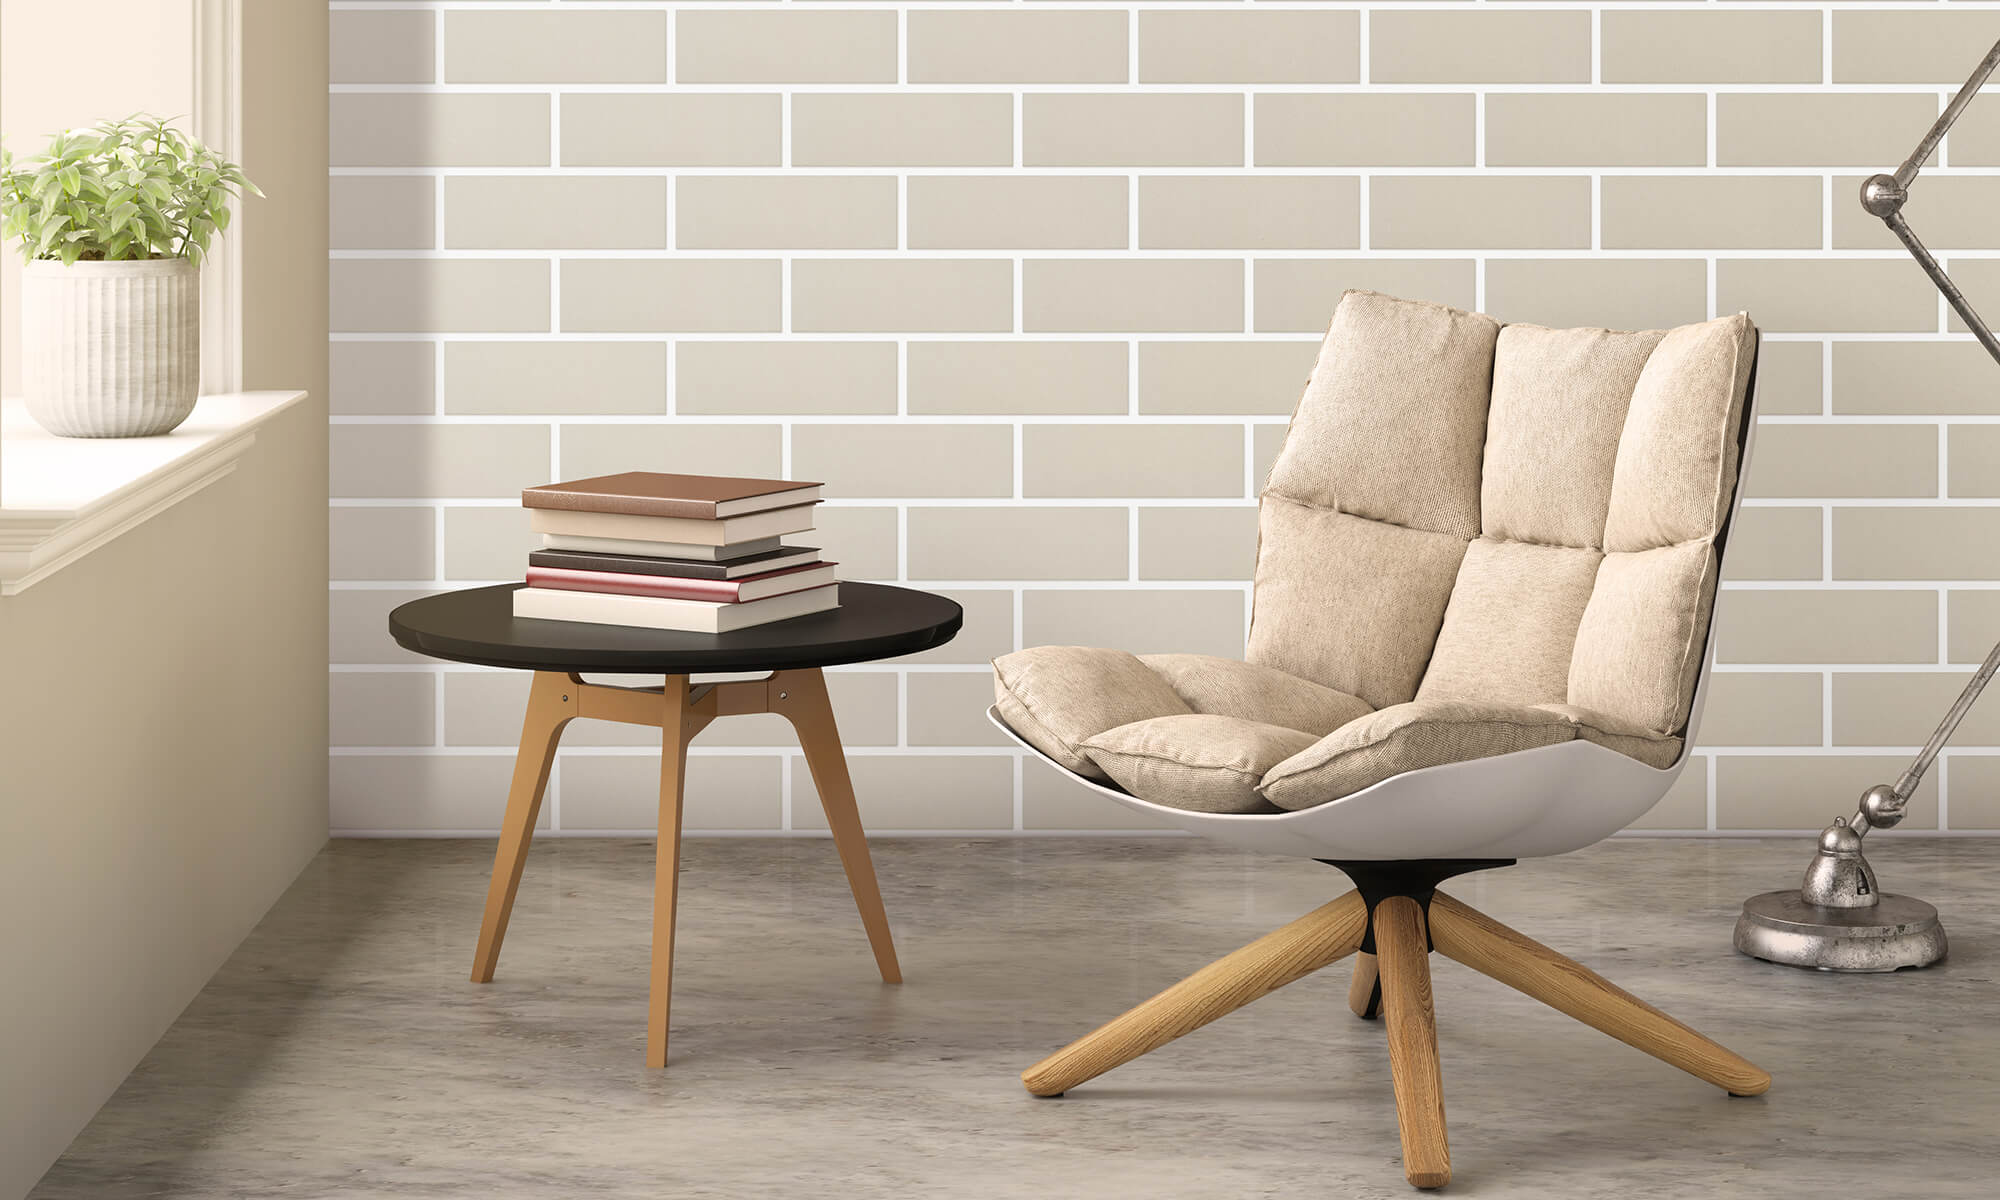 Estilo Altas light grey Spanish clay face brick wall with chair and window sill